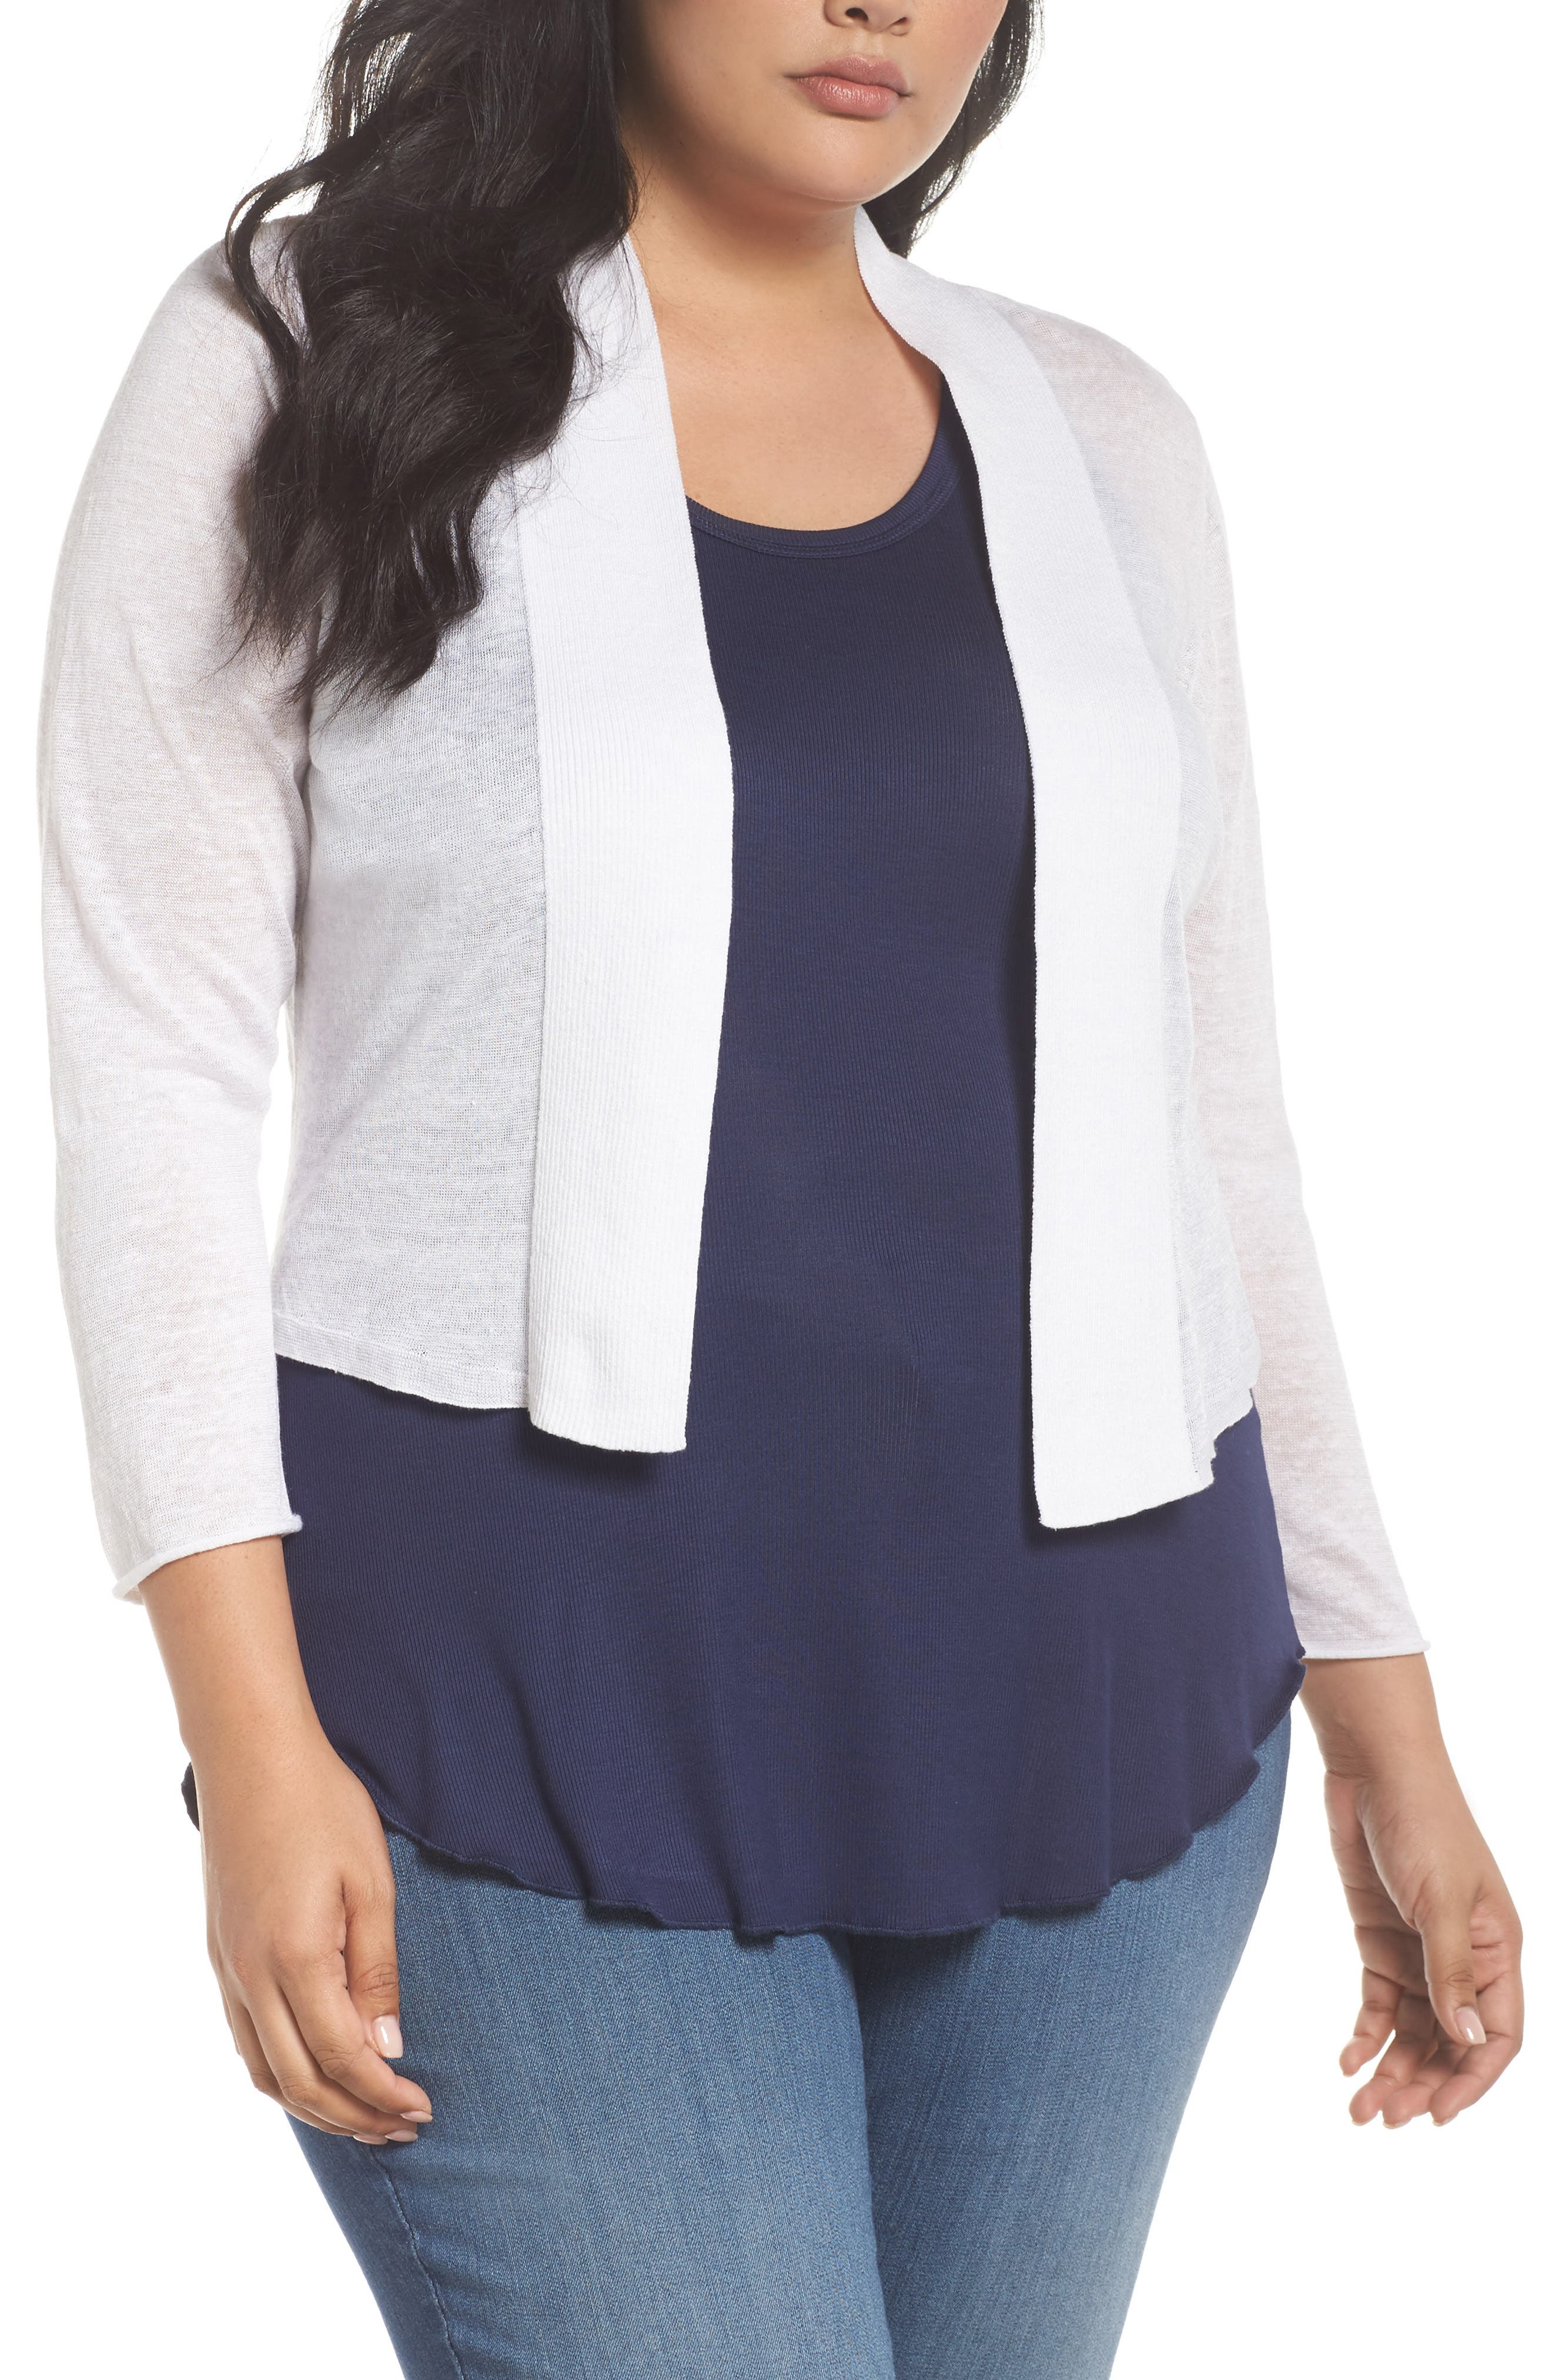 A cropped, open cardigan features a delicately slubbed, linen-blend knit contrasted with finely ribbed panels. The perfect layer when you want something airy-light and feminine. Style Name: Nic+Zoe Daybreak Crop Linen Blend Cardigan (Plus Size). Style Number: 5572936 1. Available in stores.